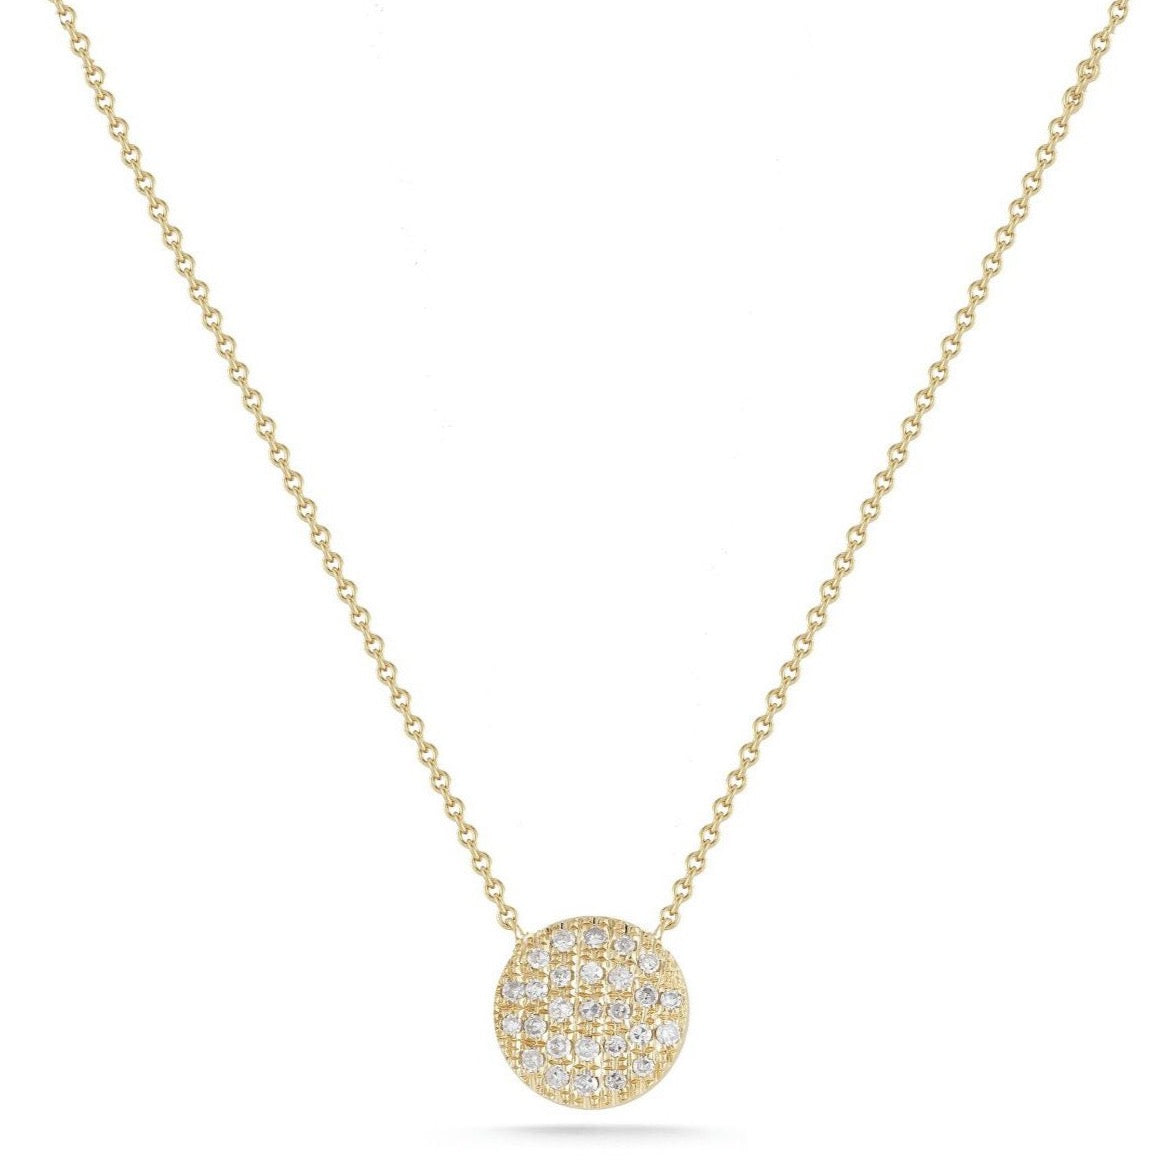 medium gold products yellow diamonds rebecca round pendant designs lauren necklace joy dana with